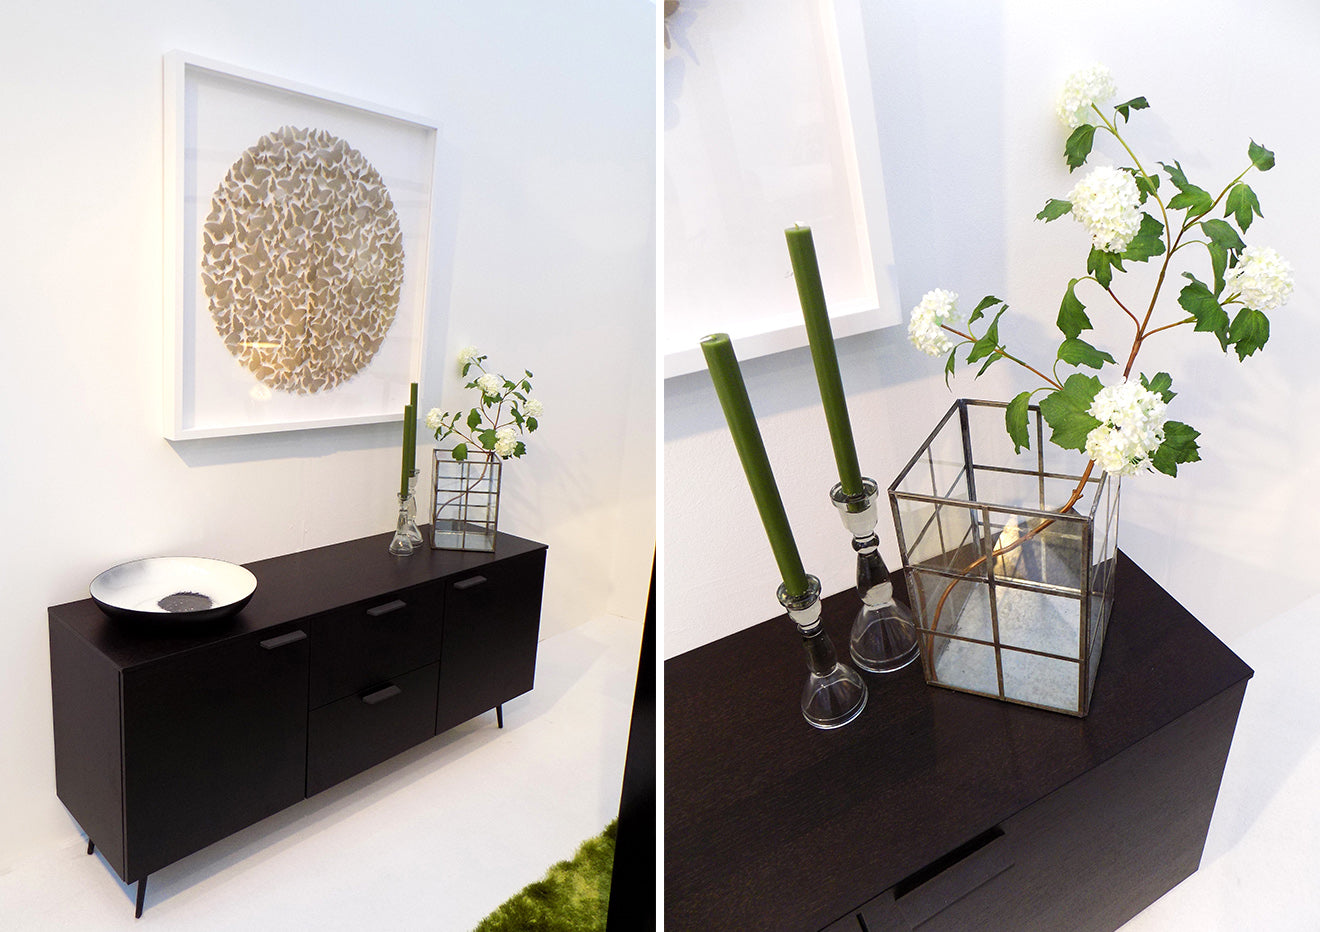 Black sideboard with glass cube vase, flowers and butterfly artwork